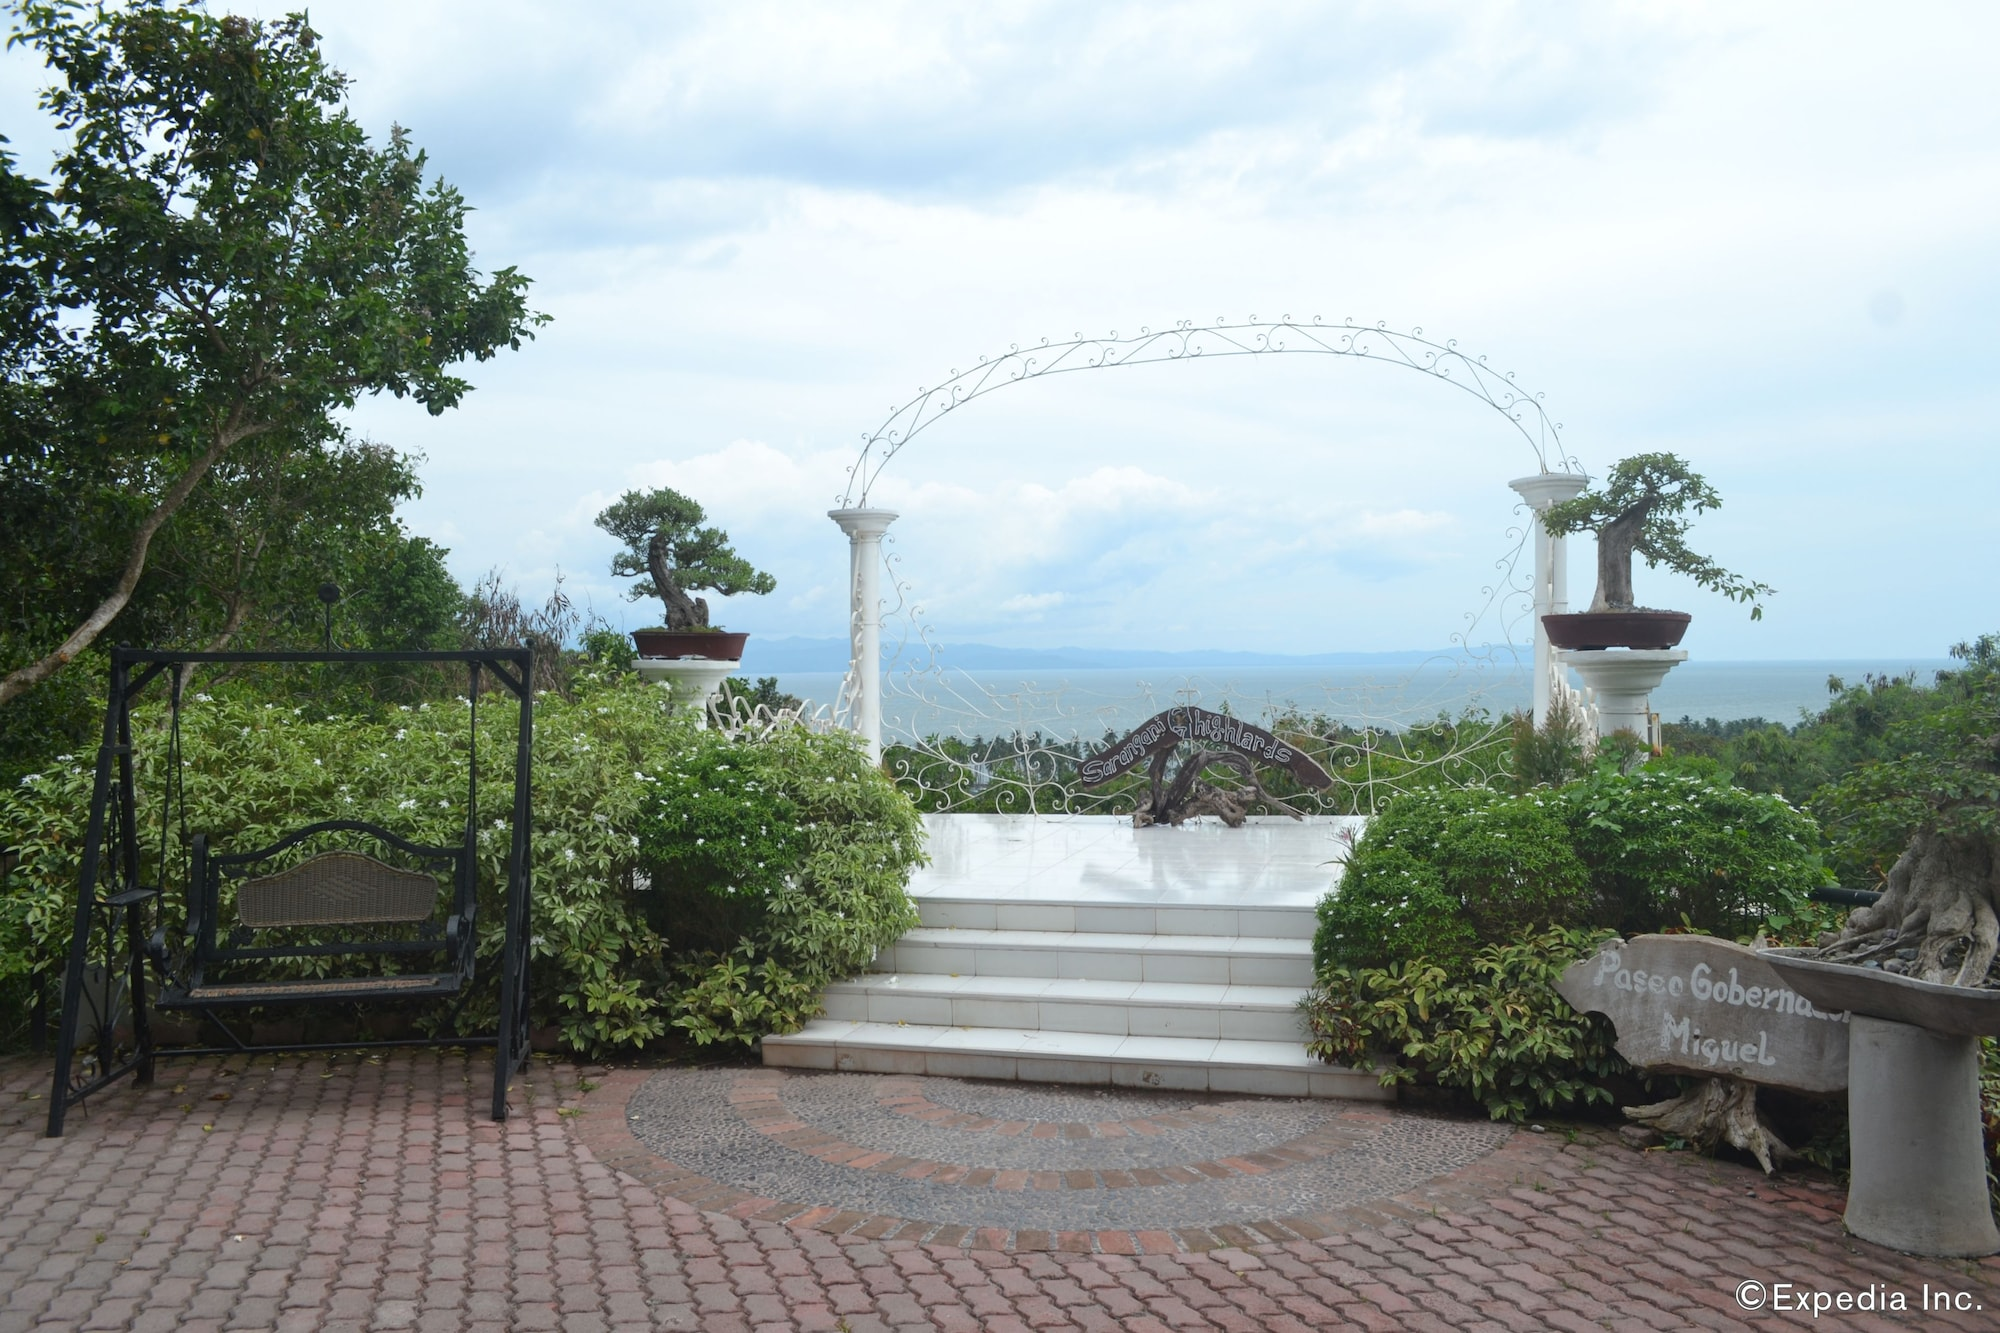 Sarangani Highlands Garden, General Santos City